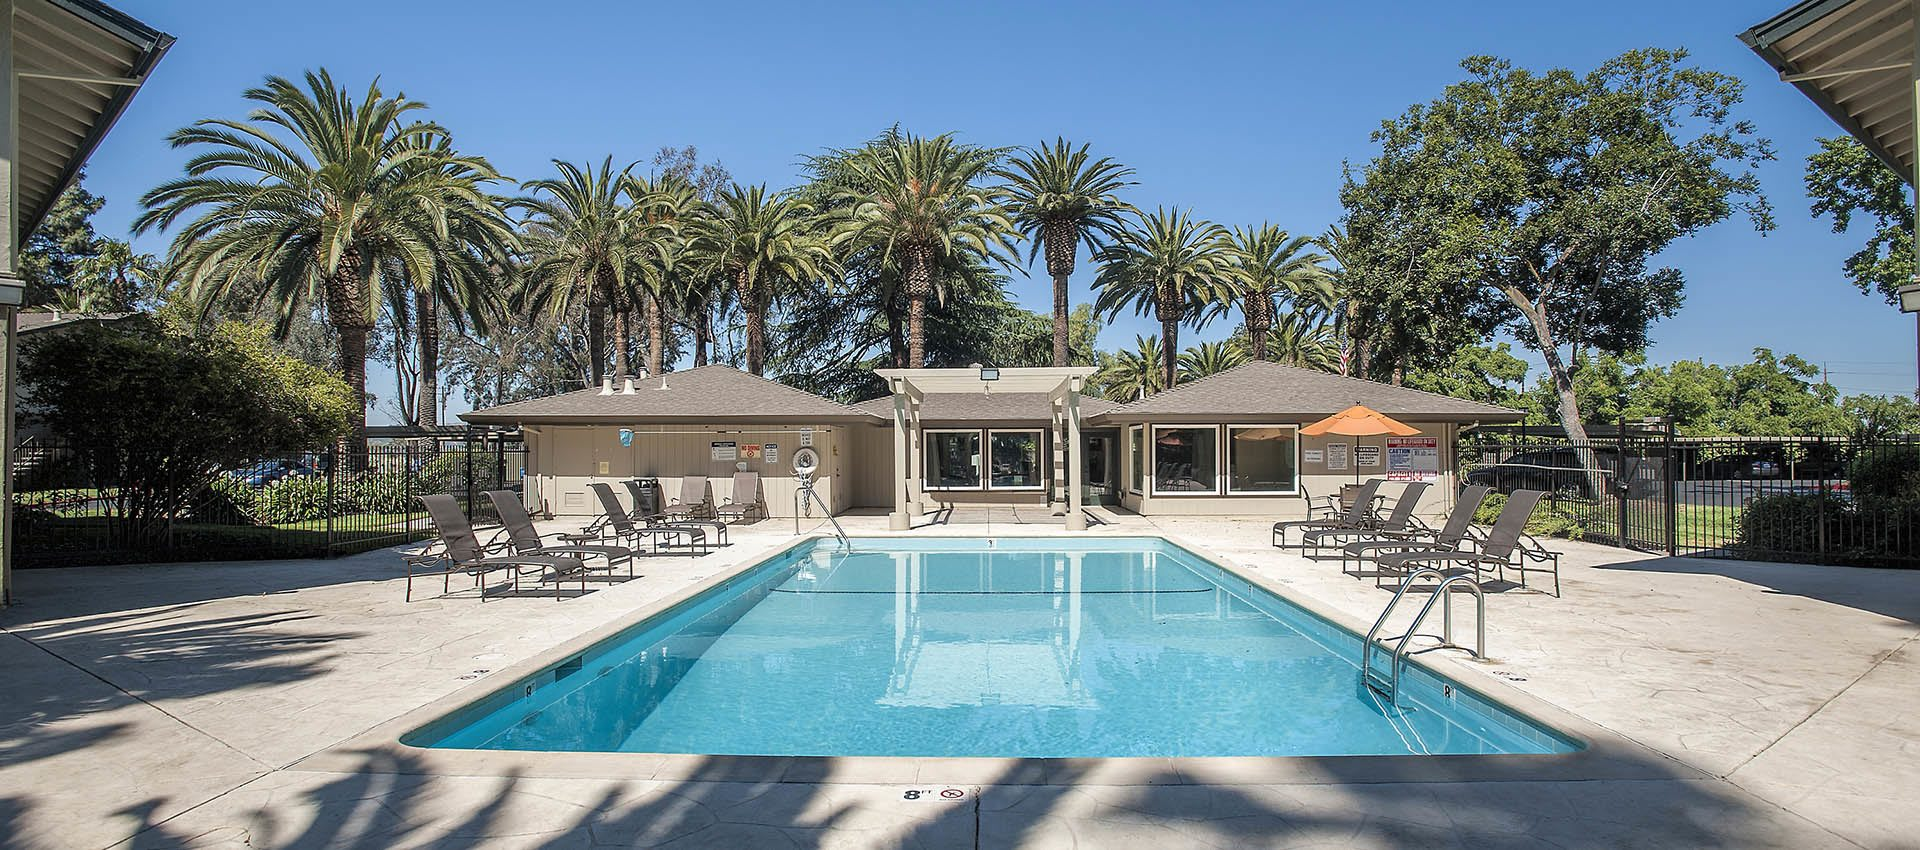 Amenities include a sparkling outdoor pool at Villa Palms Apartment Homes in Livermore, California